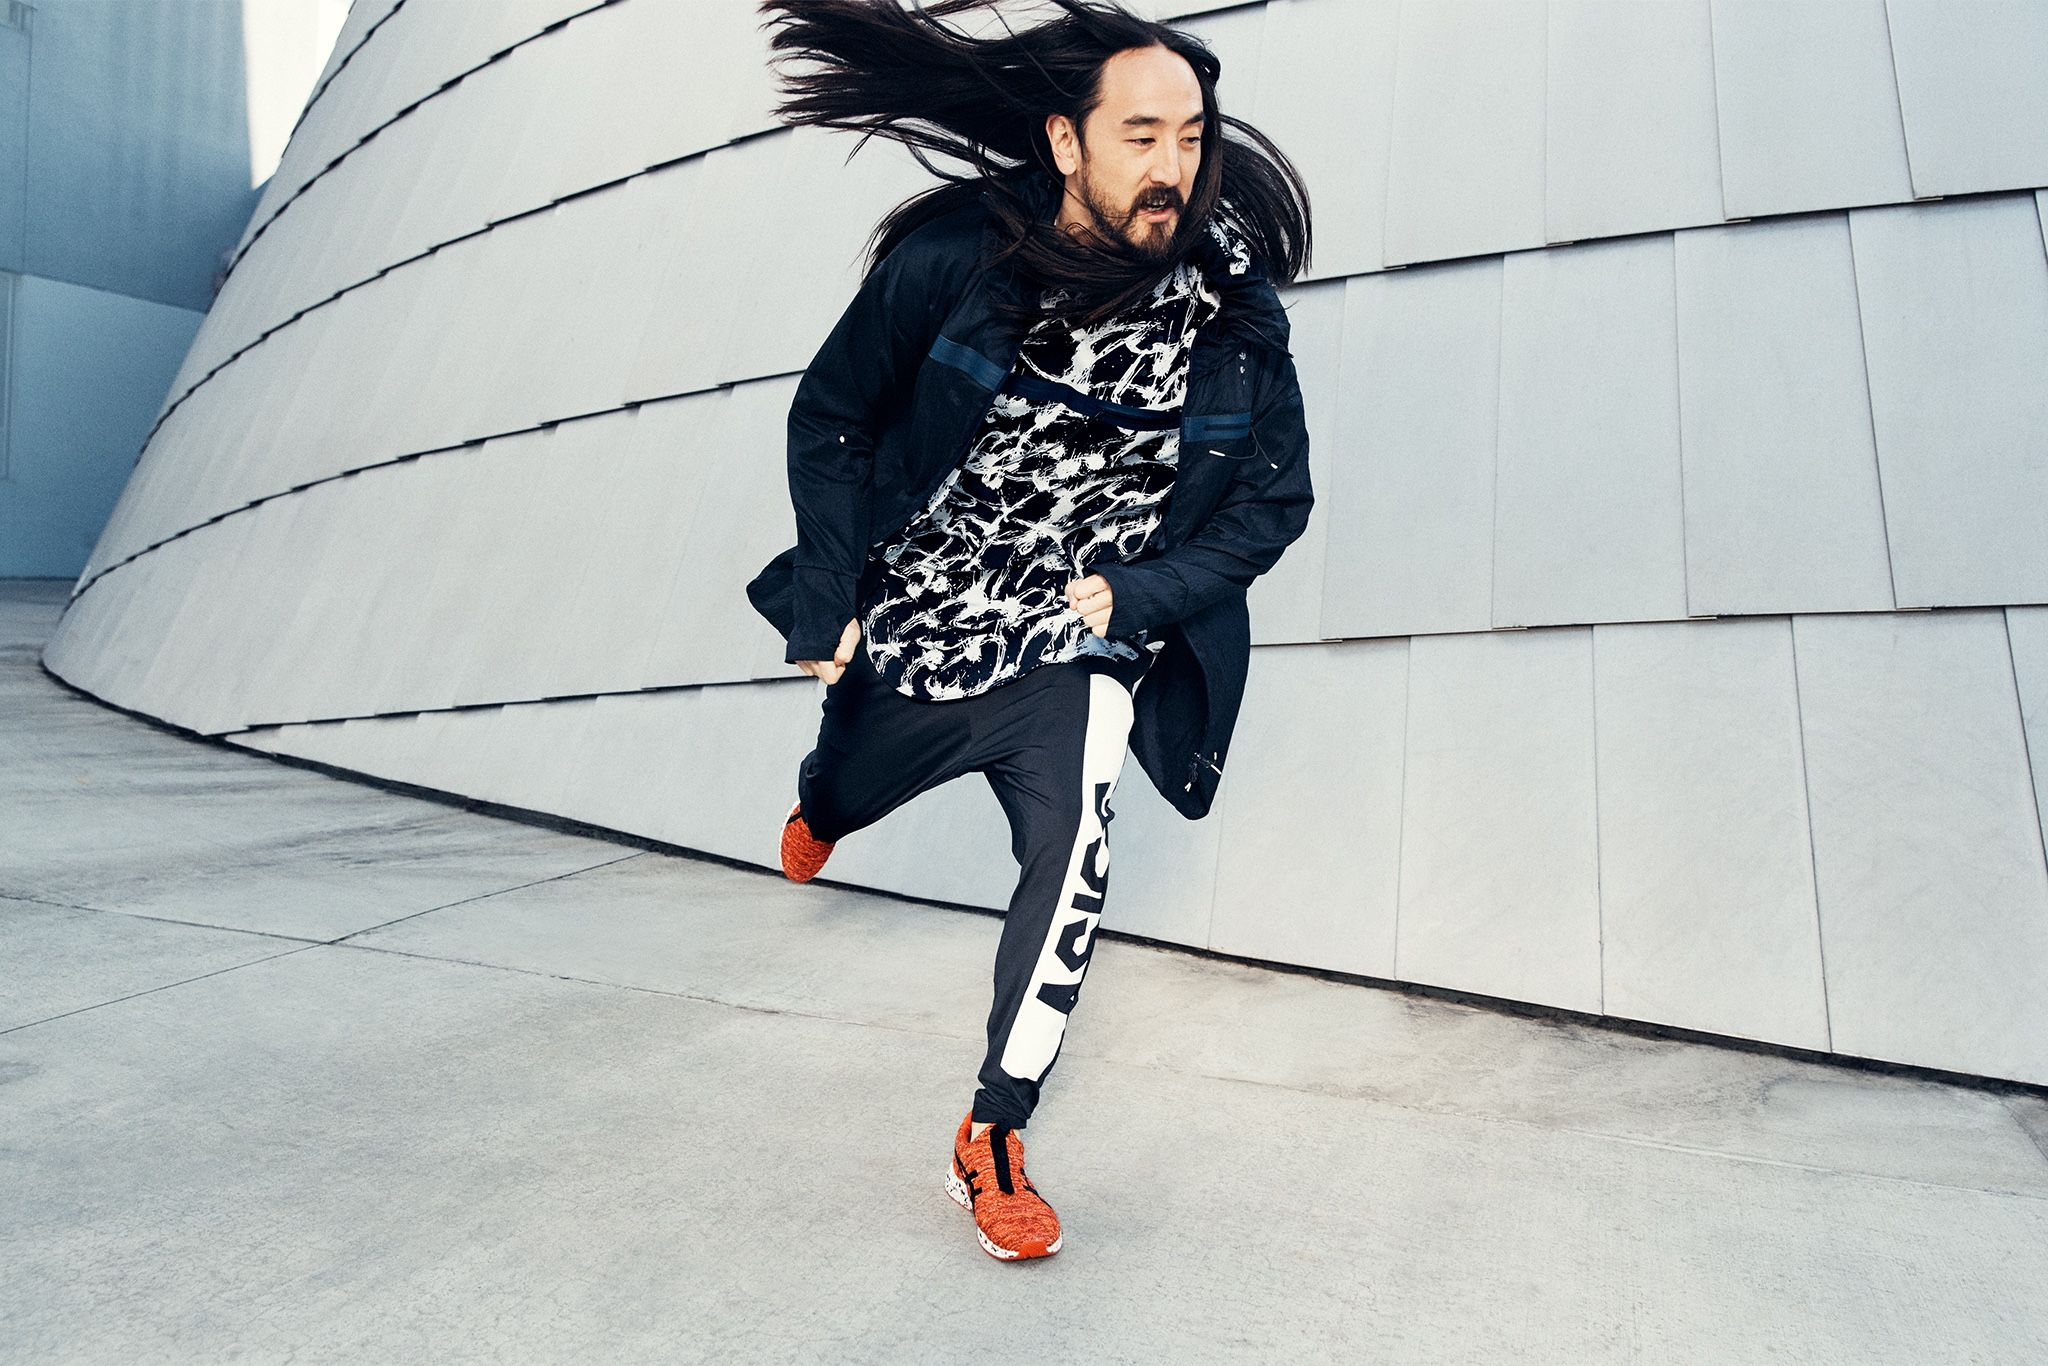 ASICS x Steve Aoki Hypergel Kenzen Collection